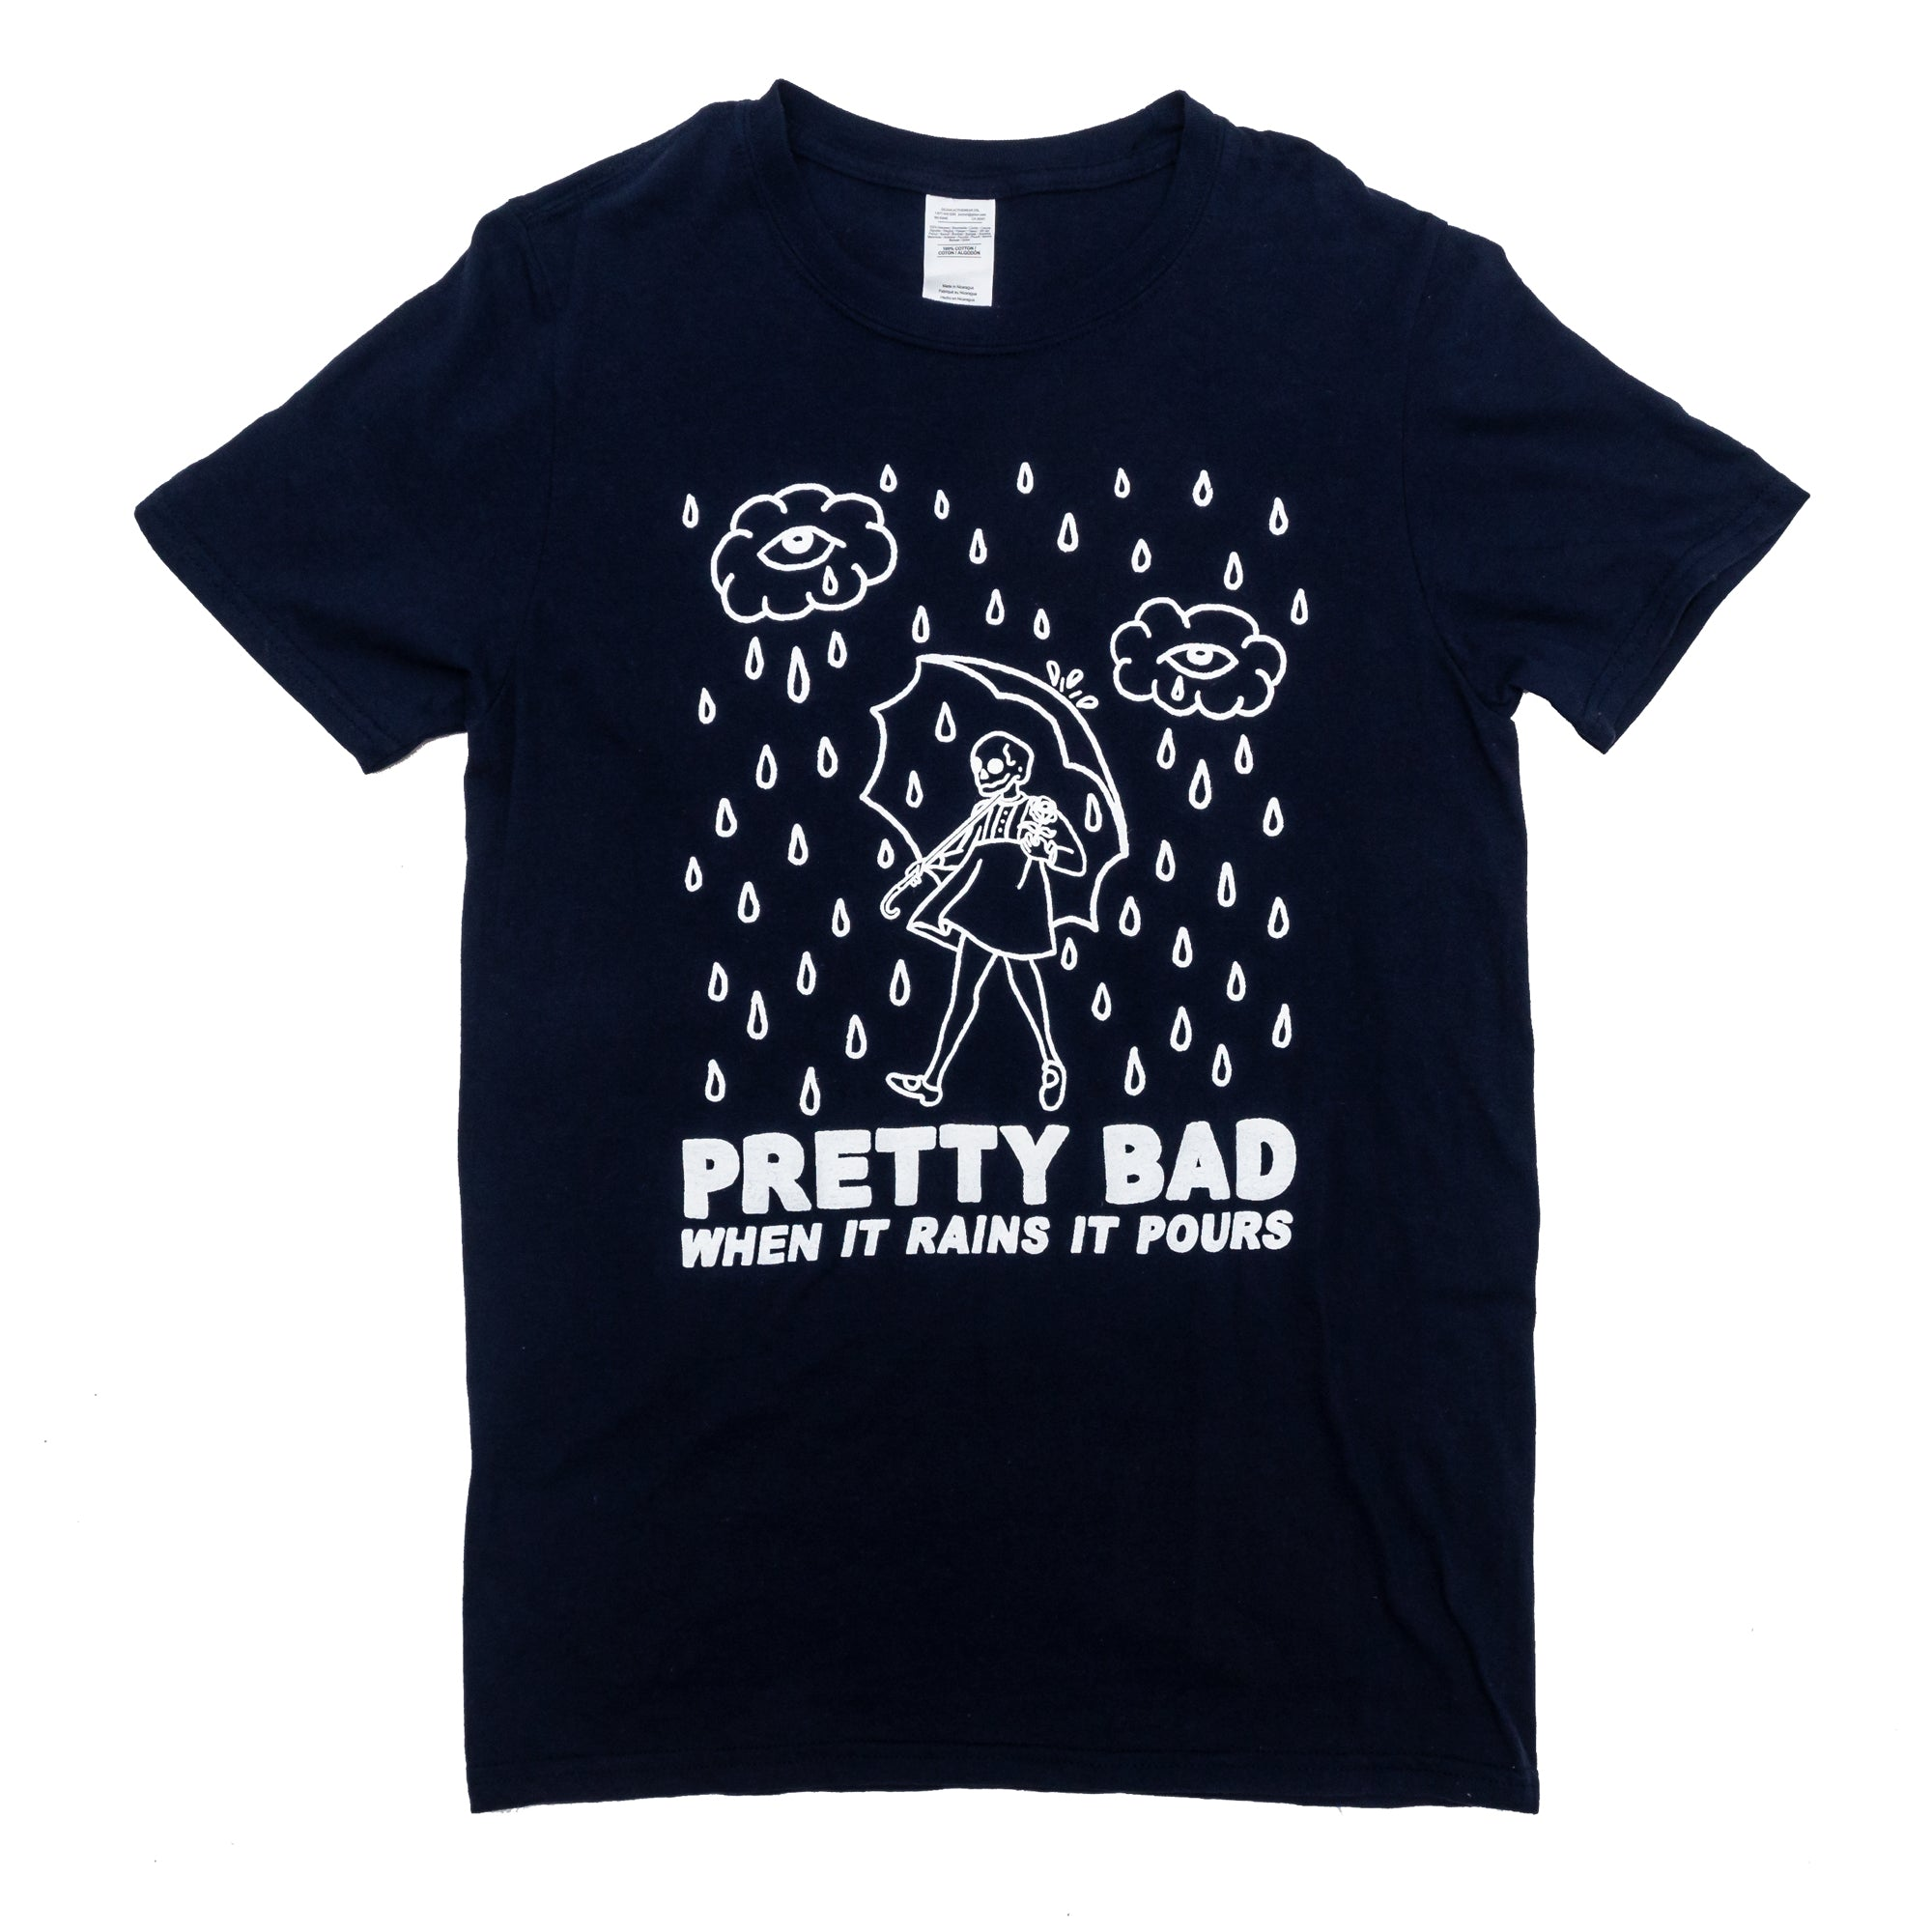 Pretty Bad When It Rains T-Shirt